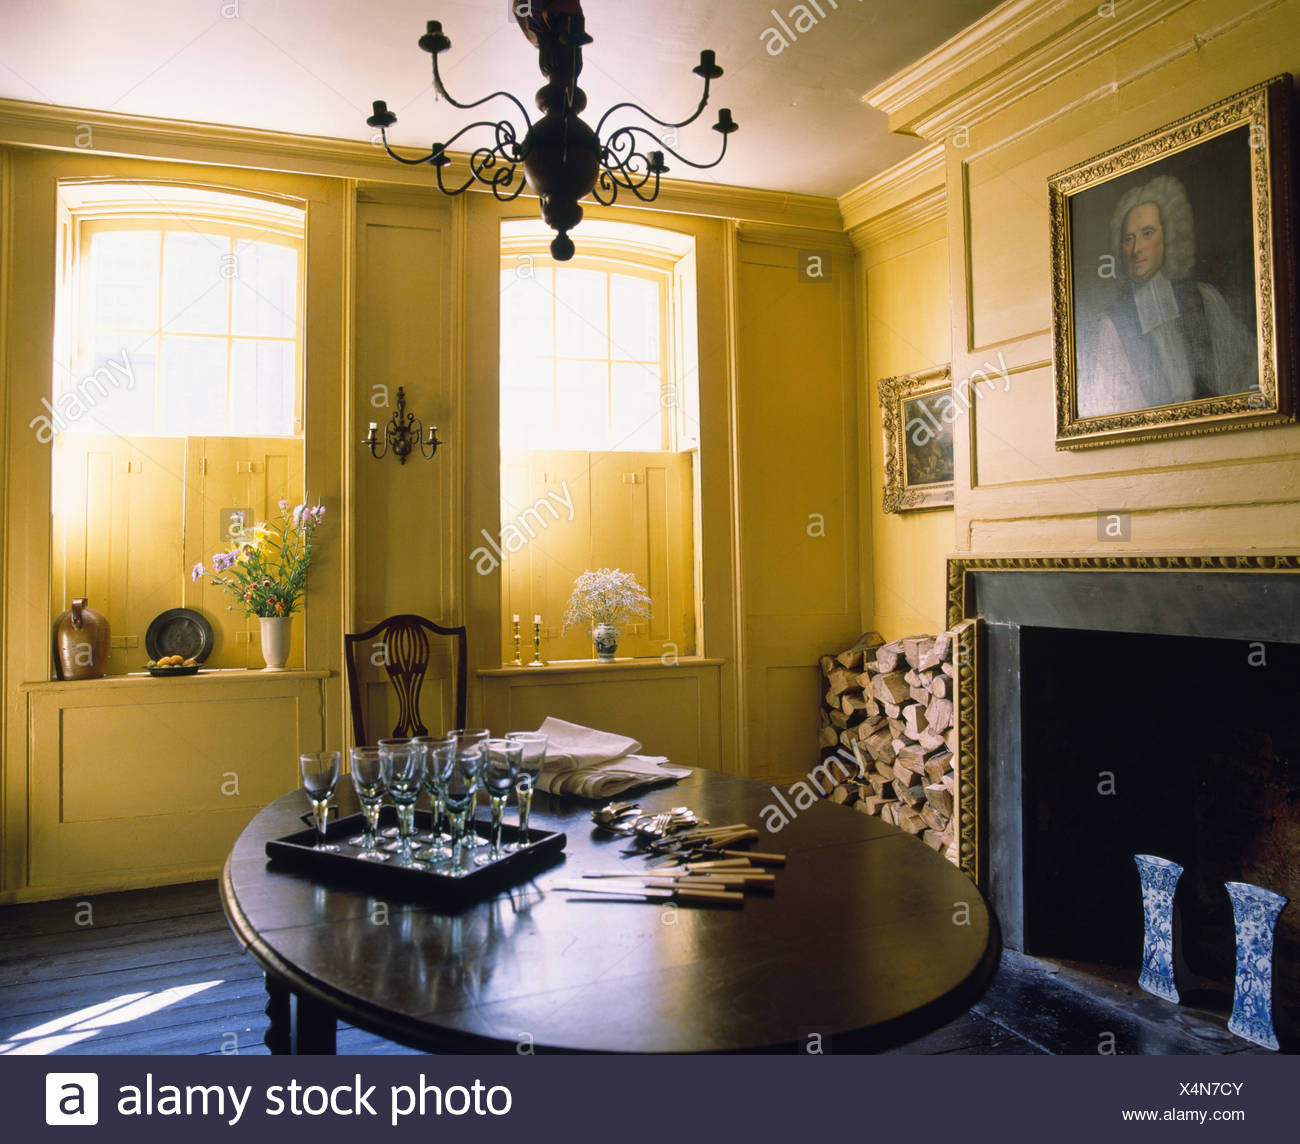 Antique Glasses On Polished Wooden Table In Yellow Georgian Dining Room With Shutters At The Windows